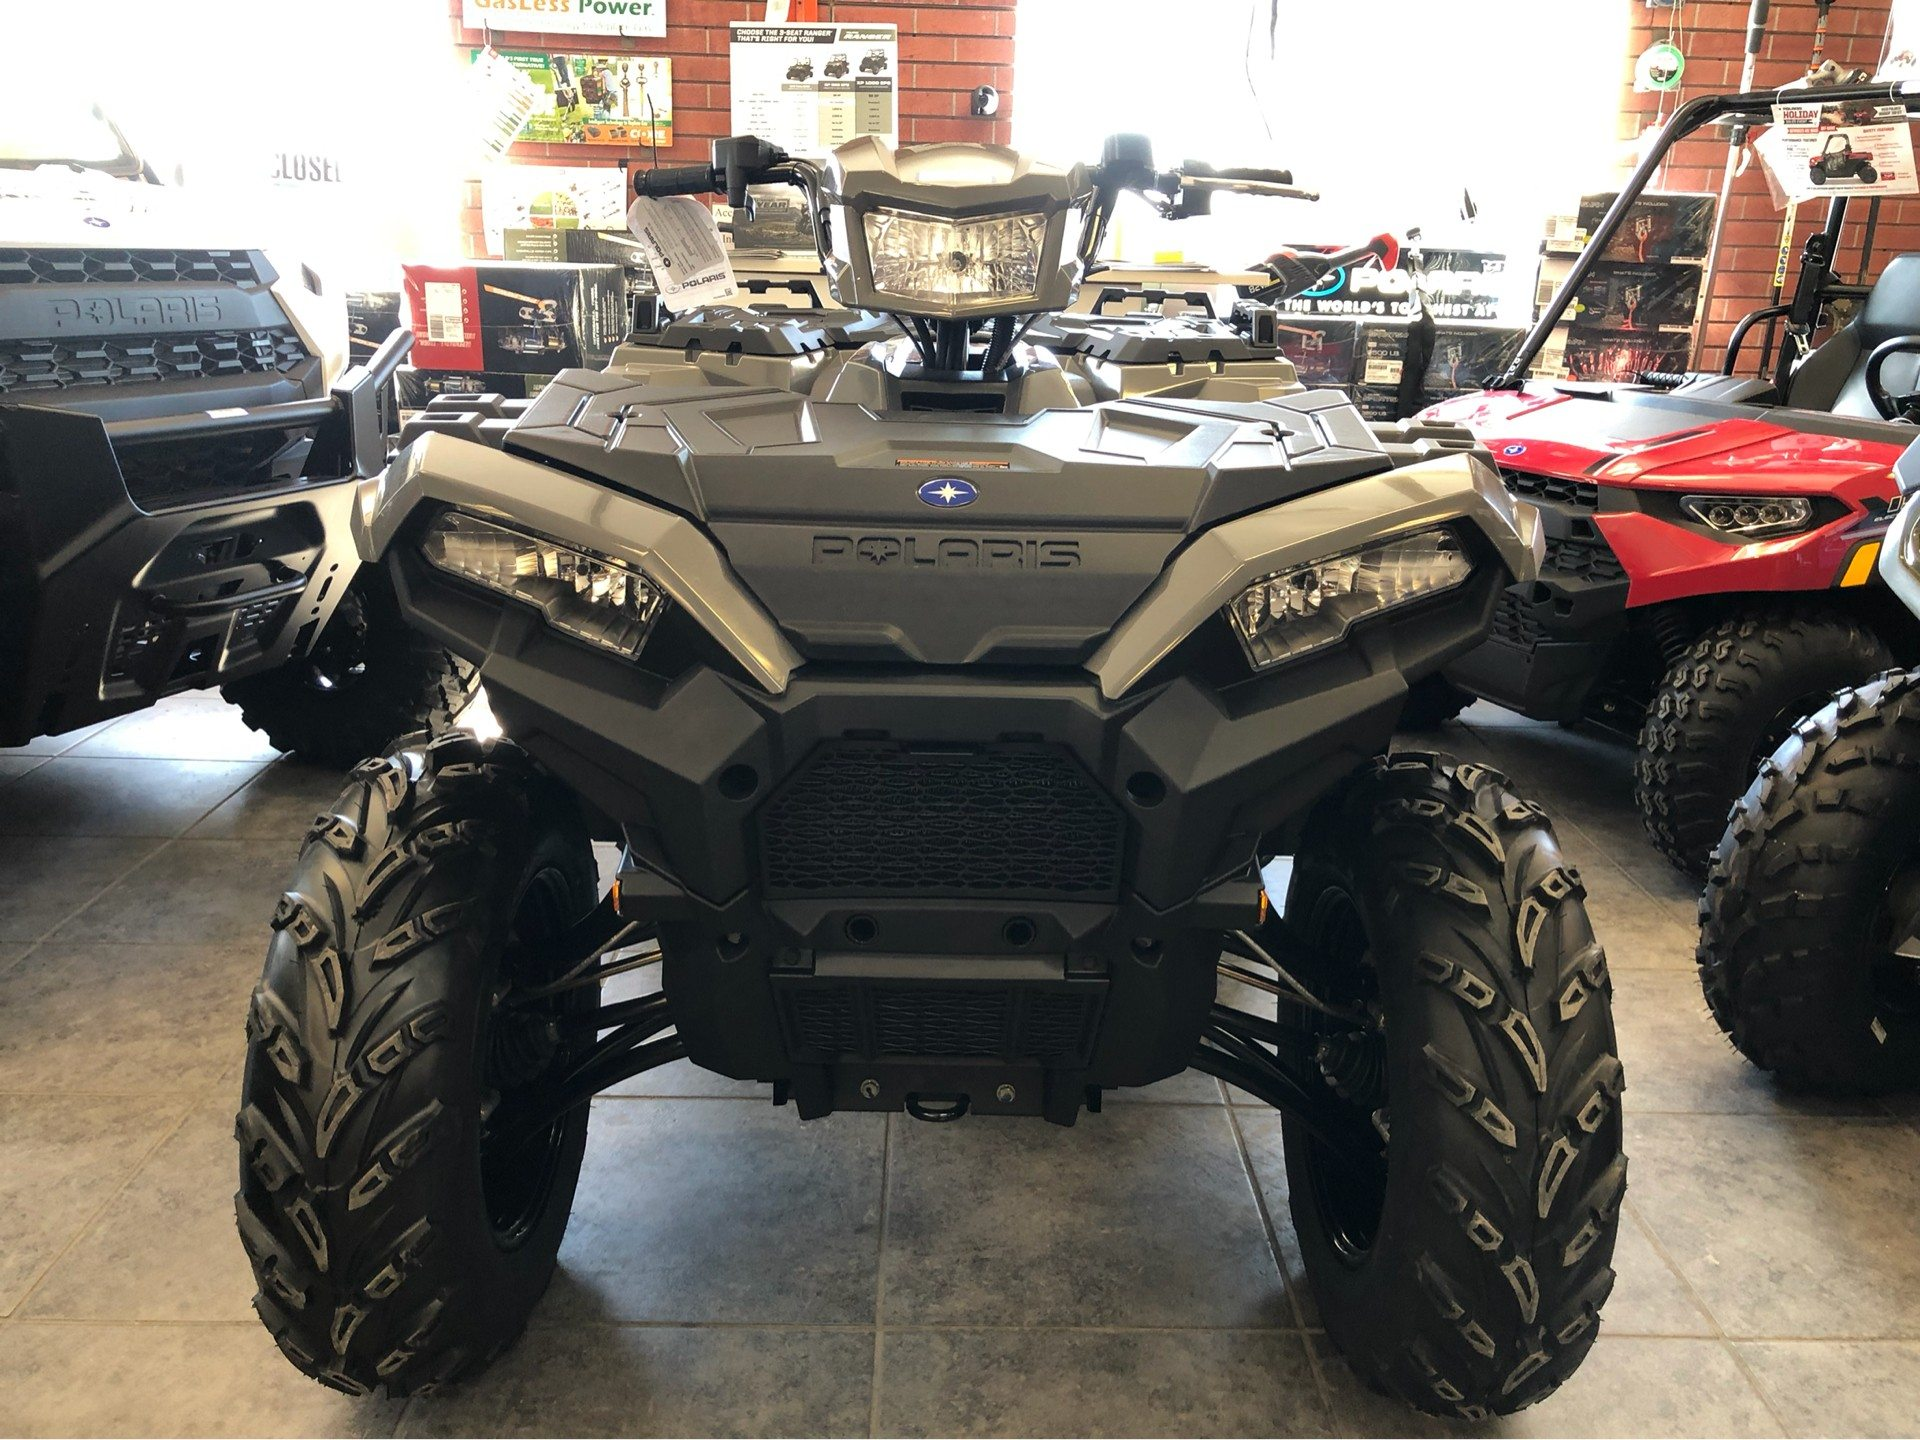 2019 Polaris Sportsman 850 in Fond Du Lac, Wisconsin - Photo 2